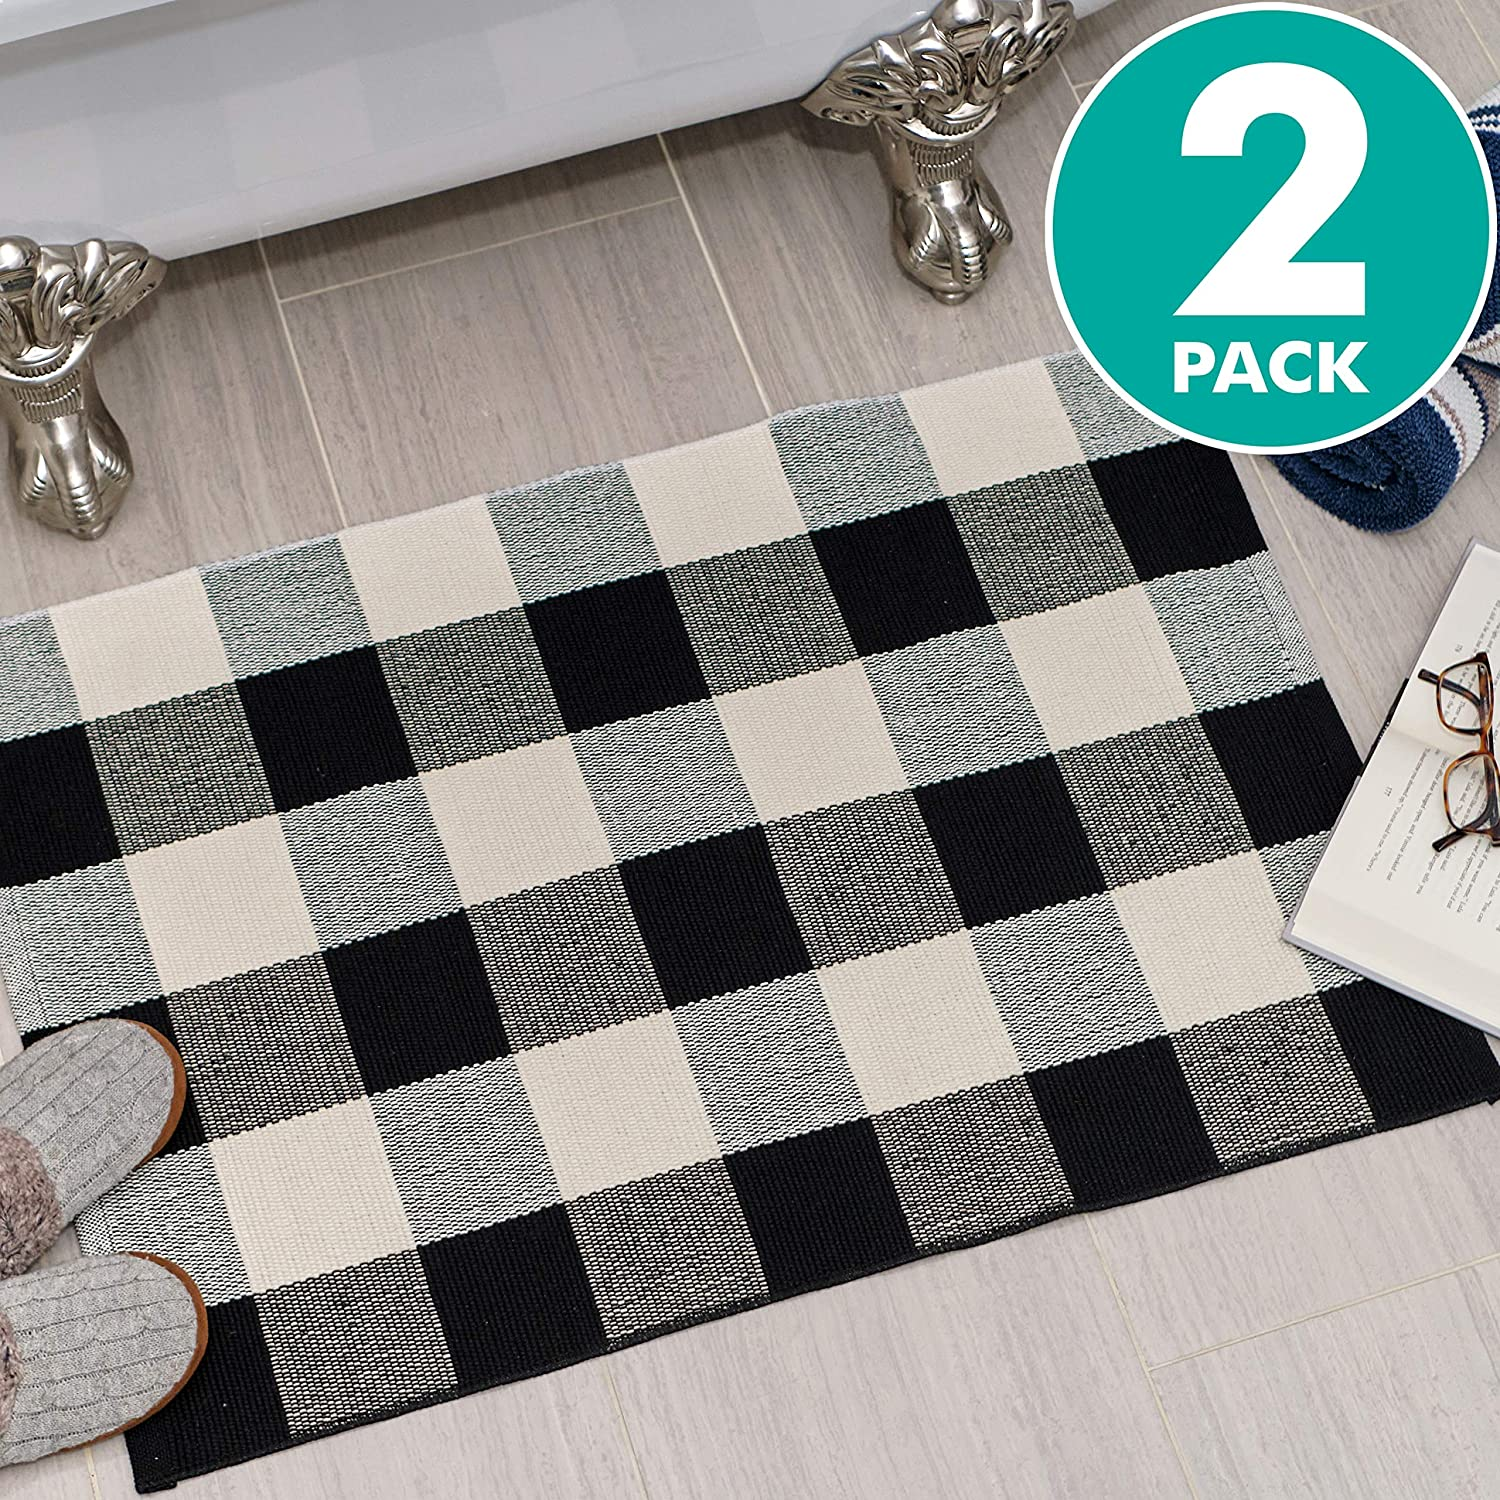 "Sierra Concepts 2-Pack Buffalo Plaid Check Rug Door Mat, 35"" x 24"" Cotton Black/White Indoor Outdoor Layered Front Porch Décor Area, Farmhouse Checkered Rugs Woven - Floor, Laundry, Kitchen, Bathroom"